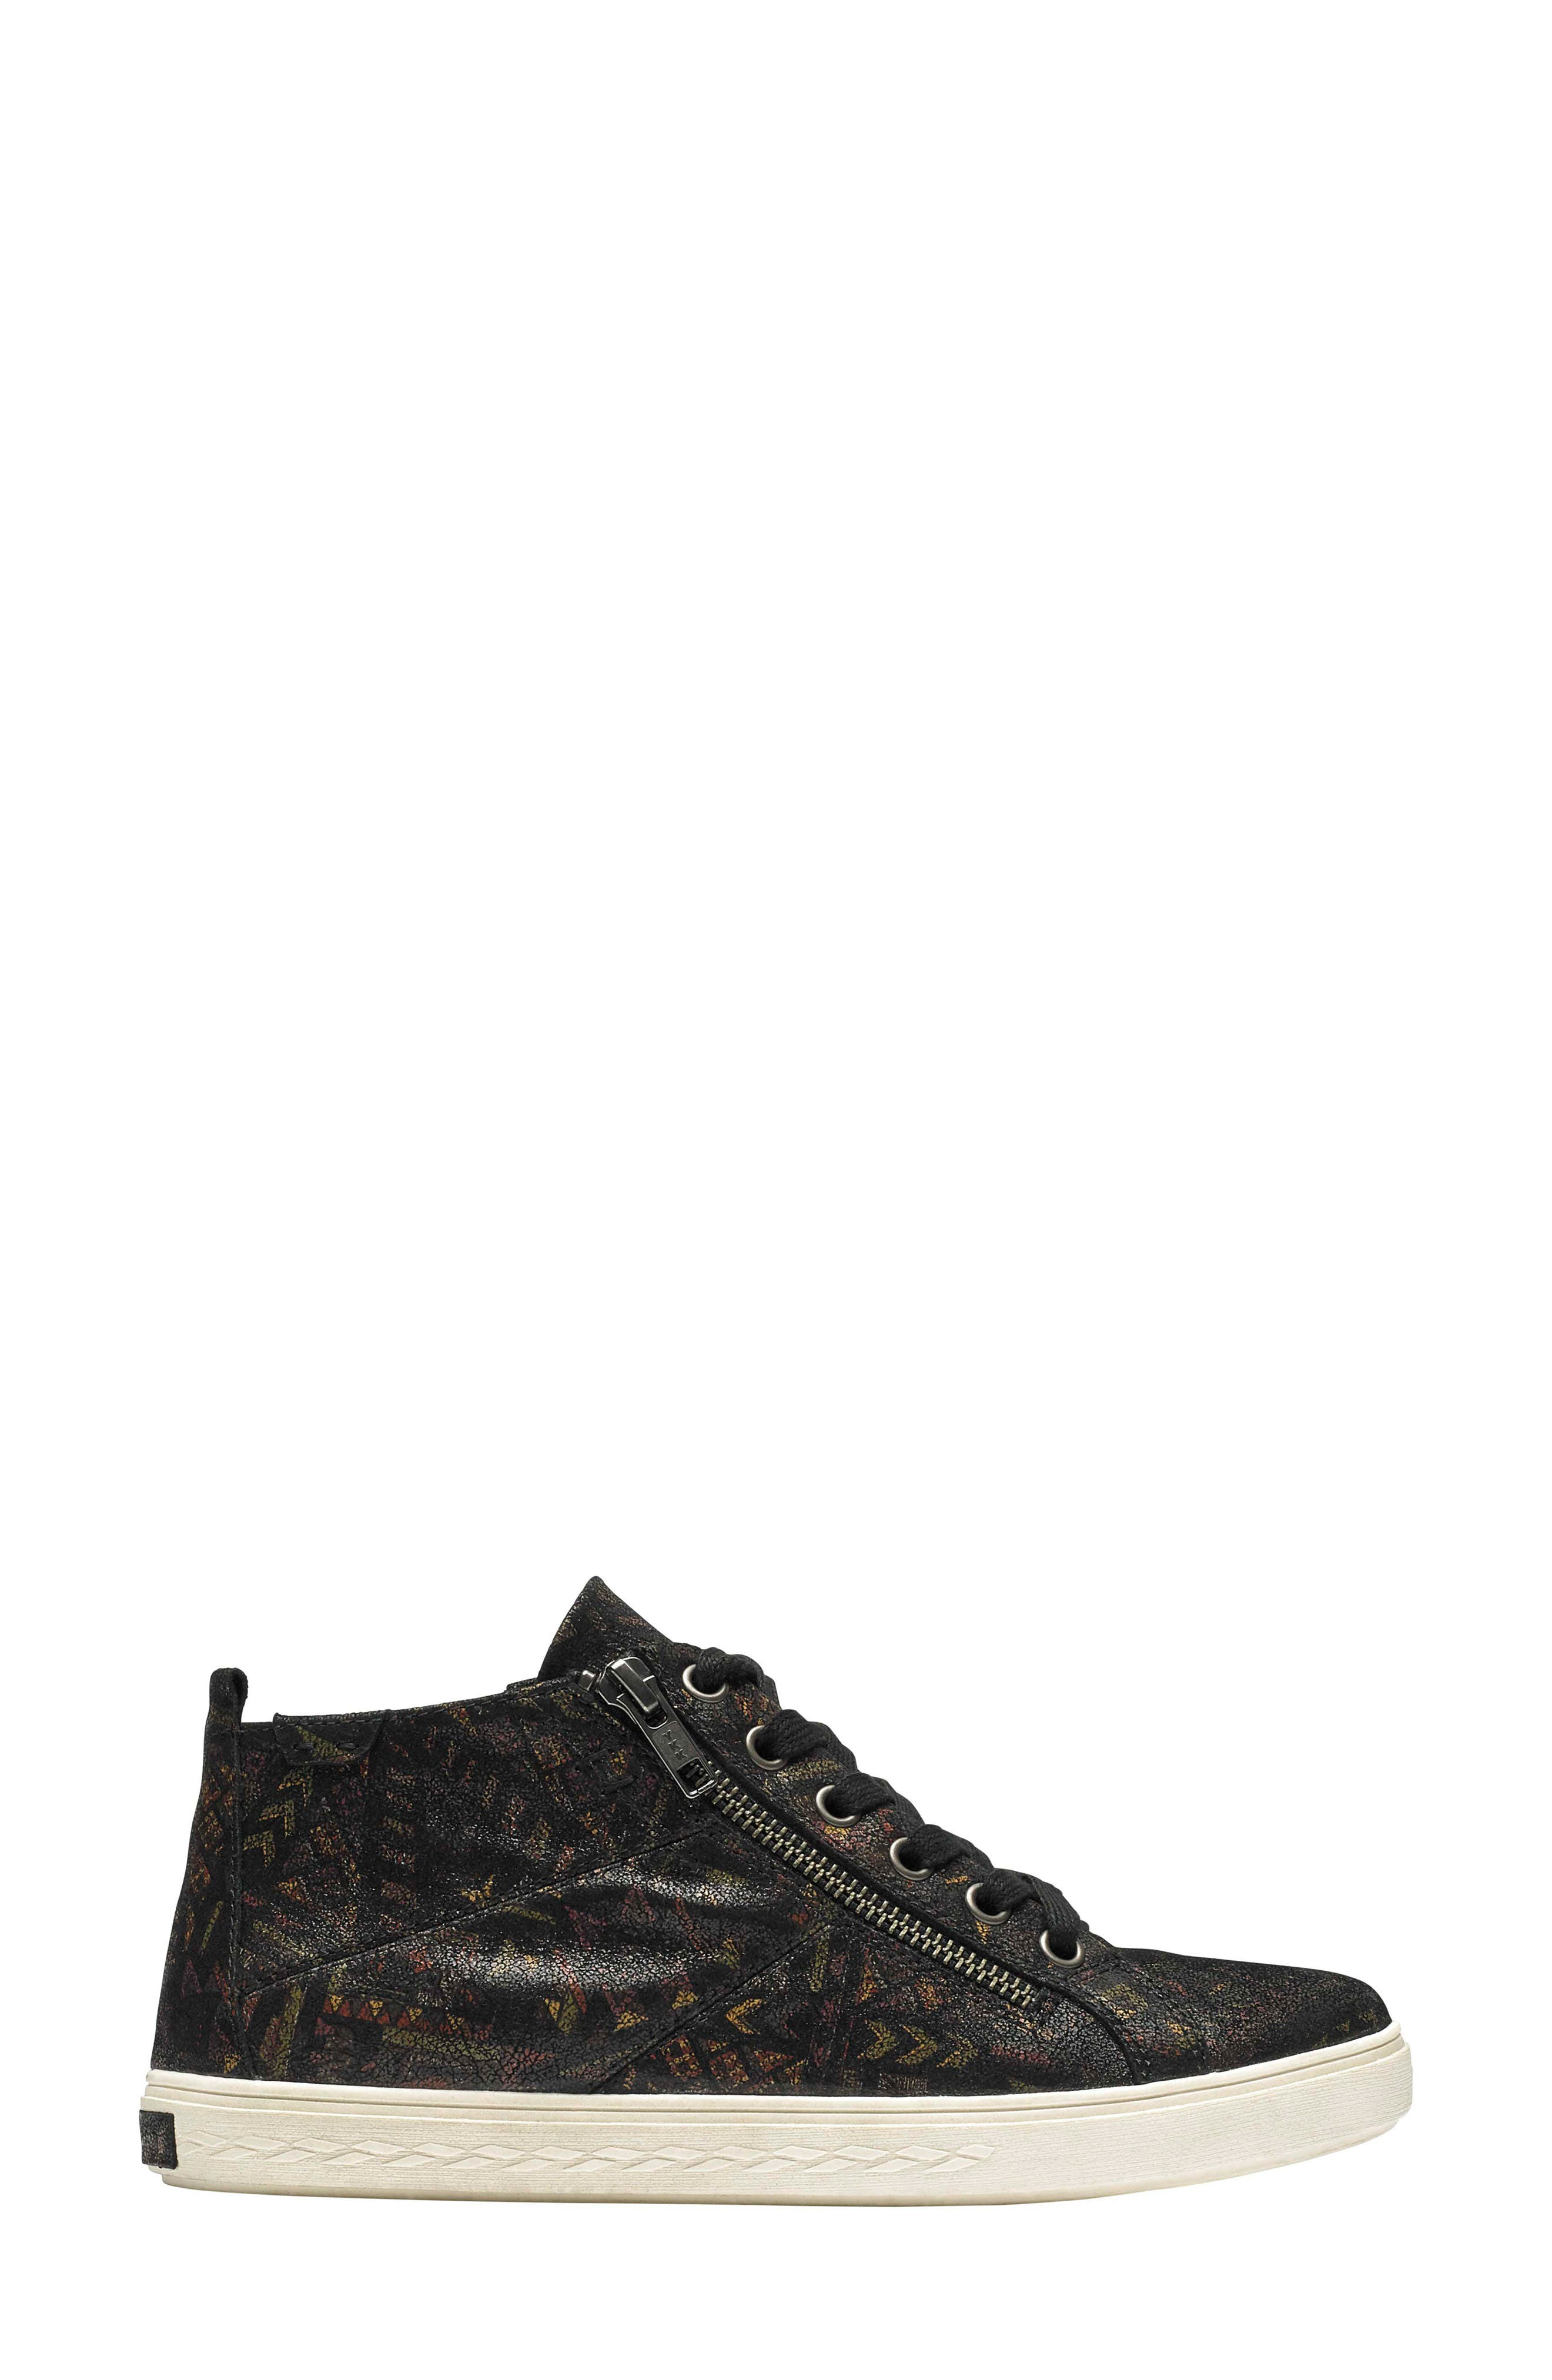 Willa High Top Sneaker,                             Alternate thumbnail 3, color,                             NOVELTY PRINT LEATHER